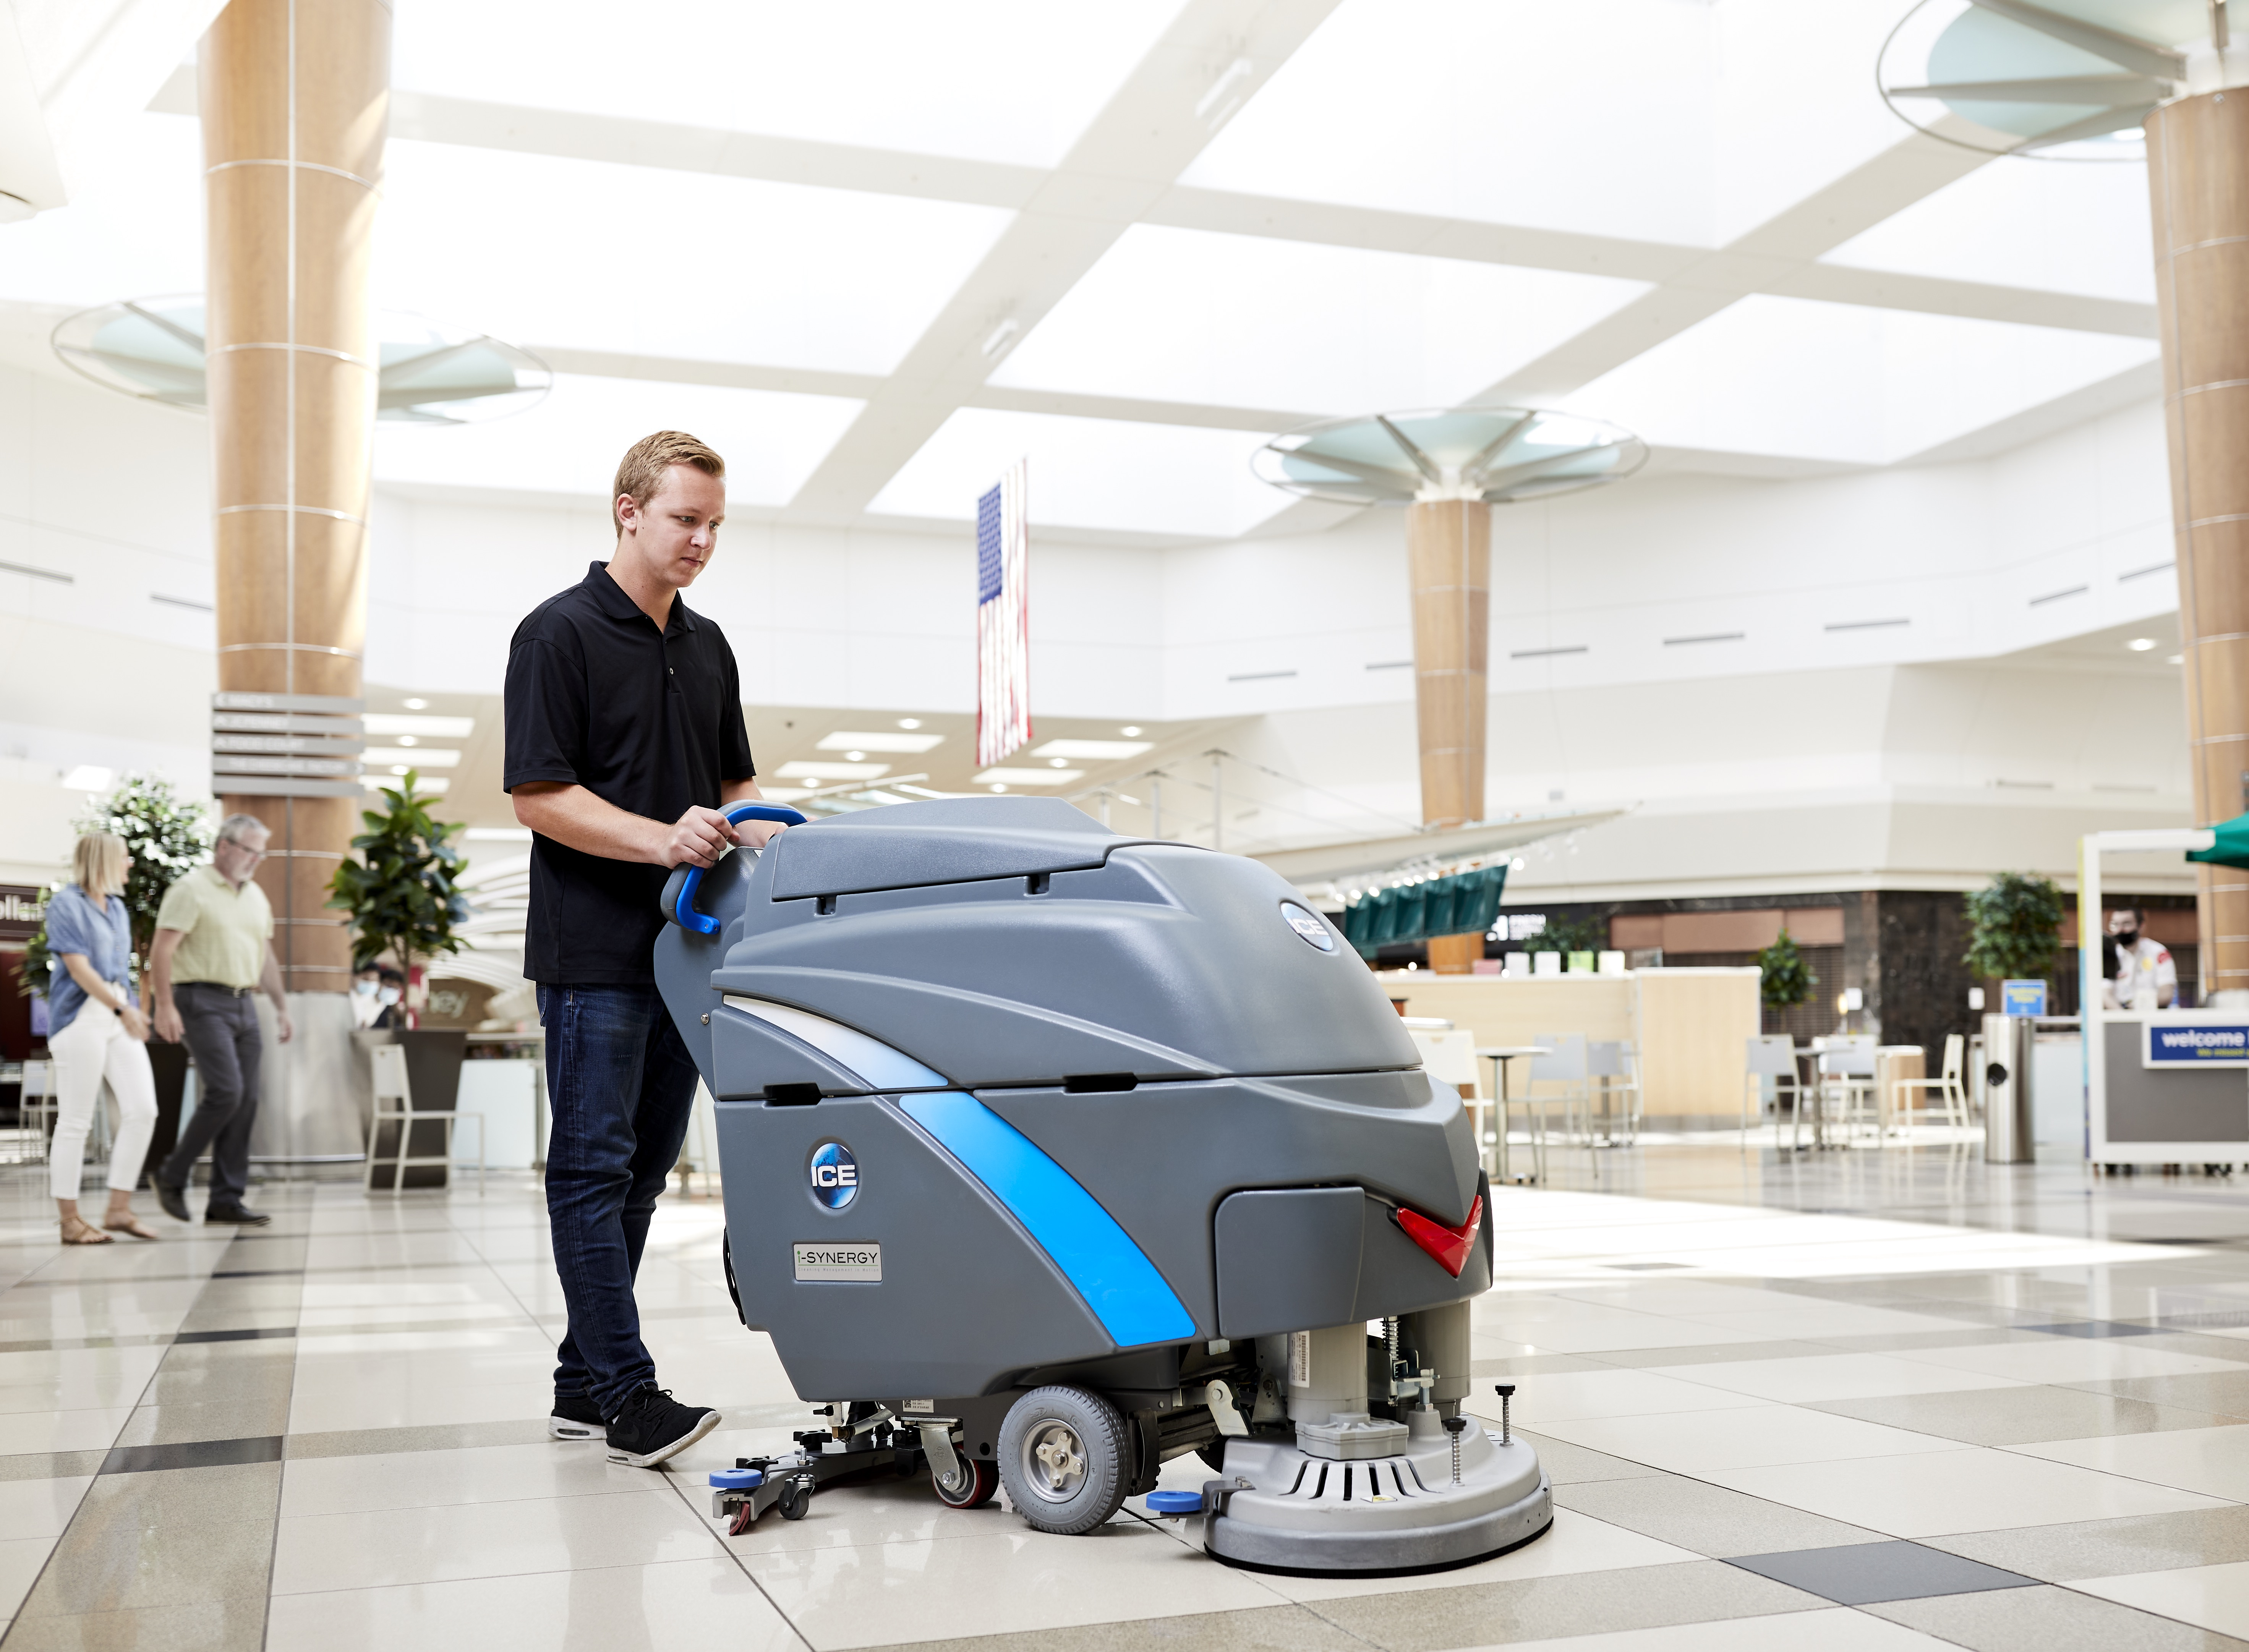 4 Reasons Routine Floor Care is Important for Your Business